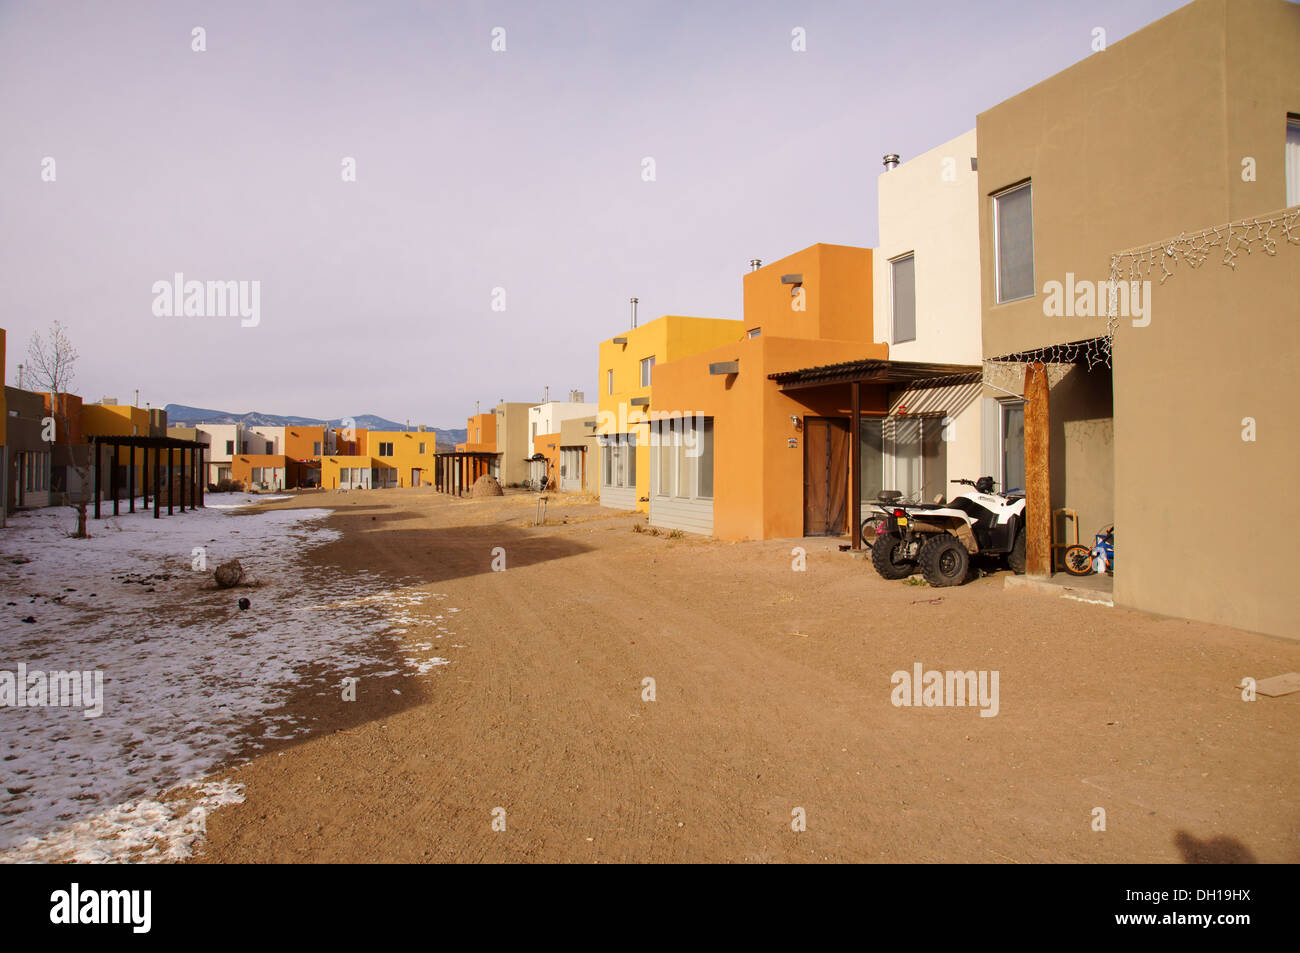 New mexico rio arriba county abiquiu - Ohkay Owingeh Pueblo Tsigo Bugeh Village Ohkay Owingeh Rio Arriba County New Mexico Nm United States